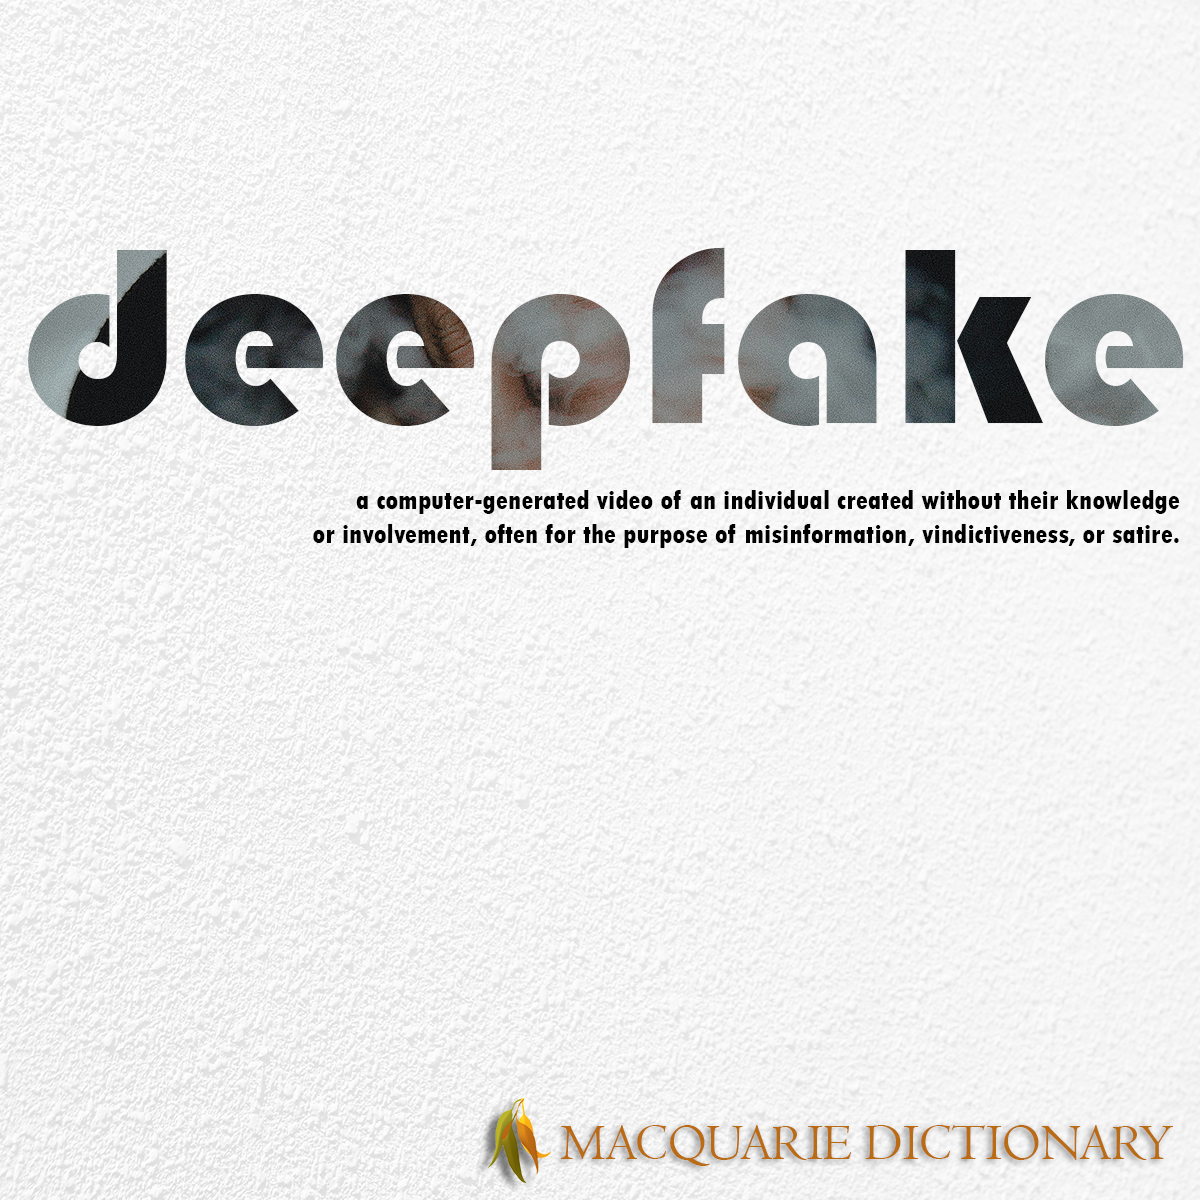 Image of Macquarie Dictionary Word of the Year - deepfake - a video of a computer-generated likeness of an individual, created using deep learning without the individual's knowledge, often for the purpose of misinformation, vindictiveness, or satire.